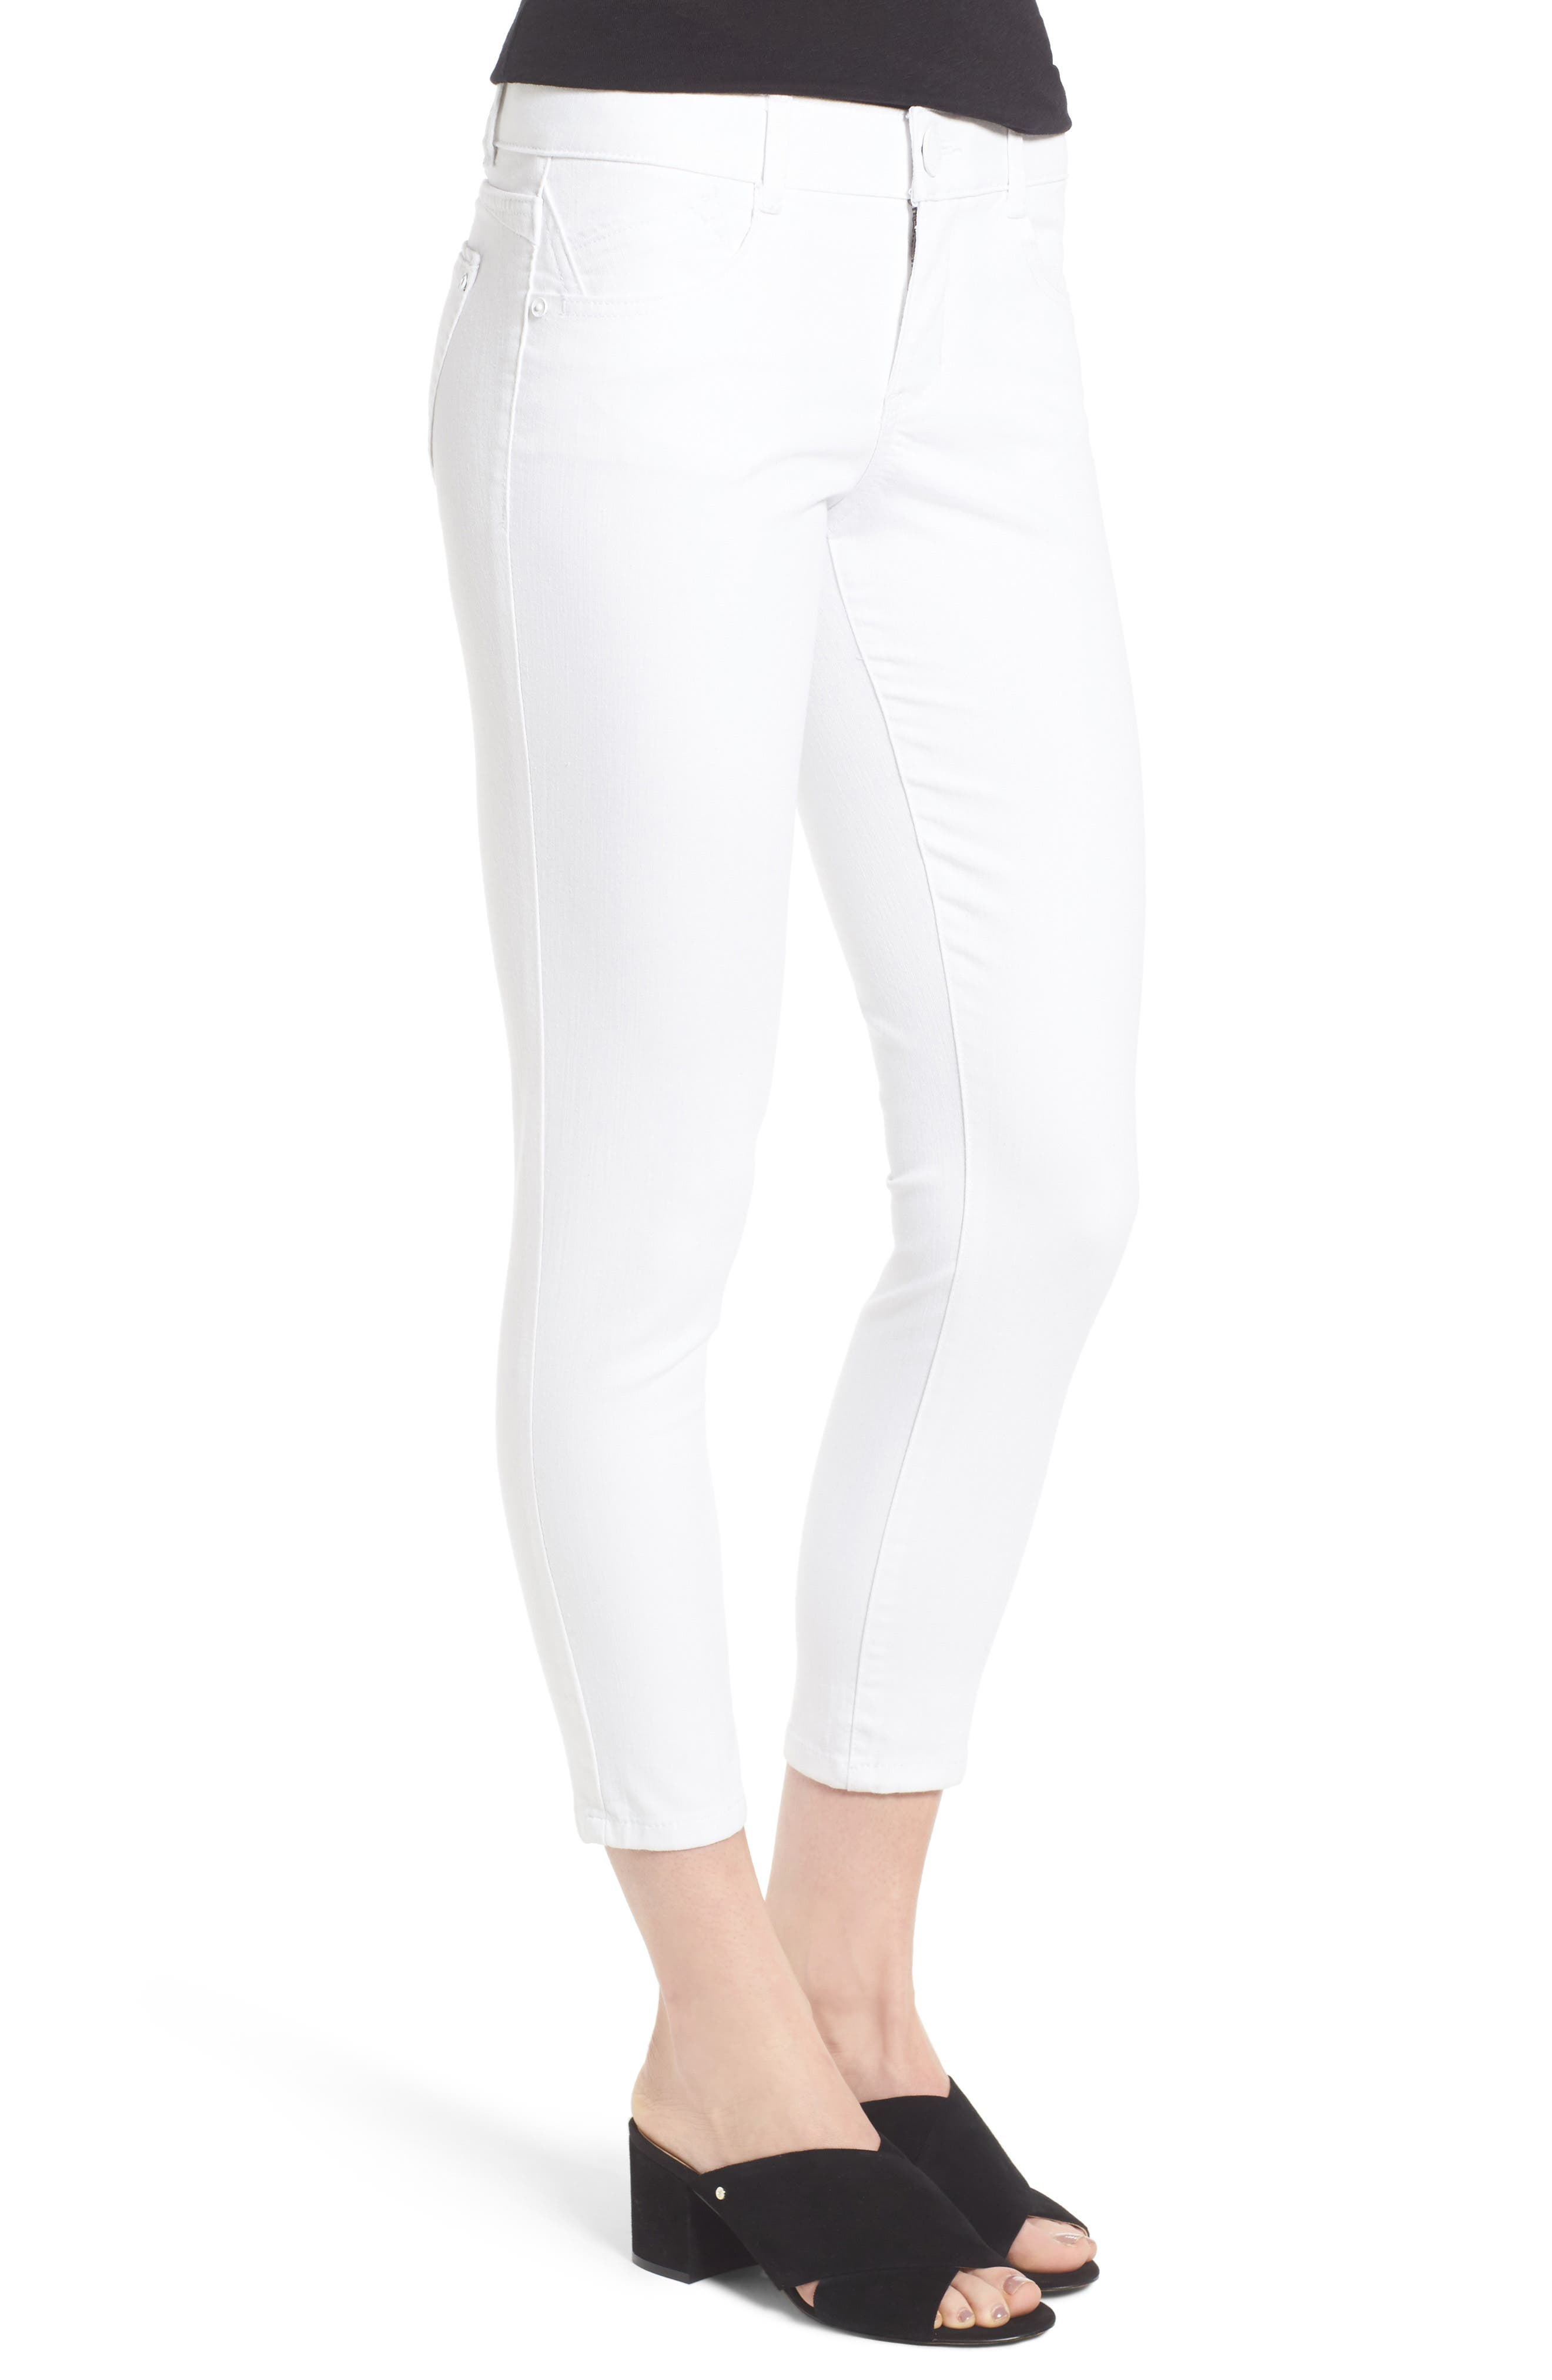 Ab-solution Skinny Crop Jeans,                             Alternate thumbnail 3, color,                             101